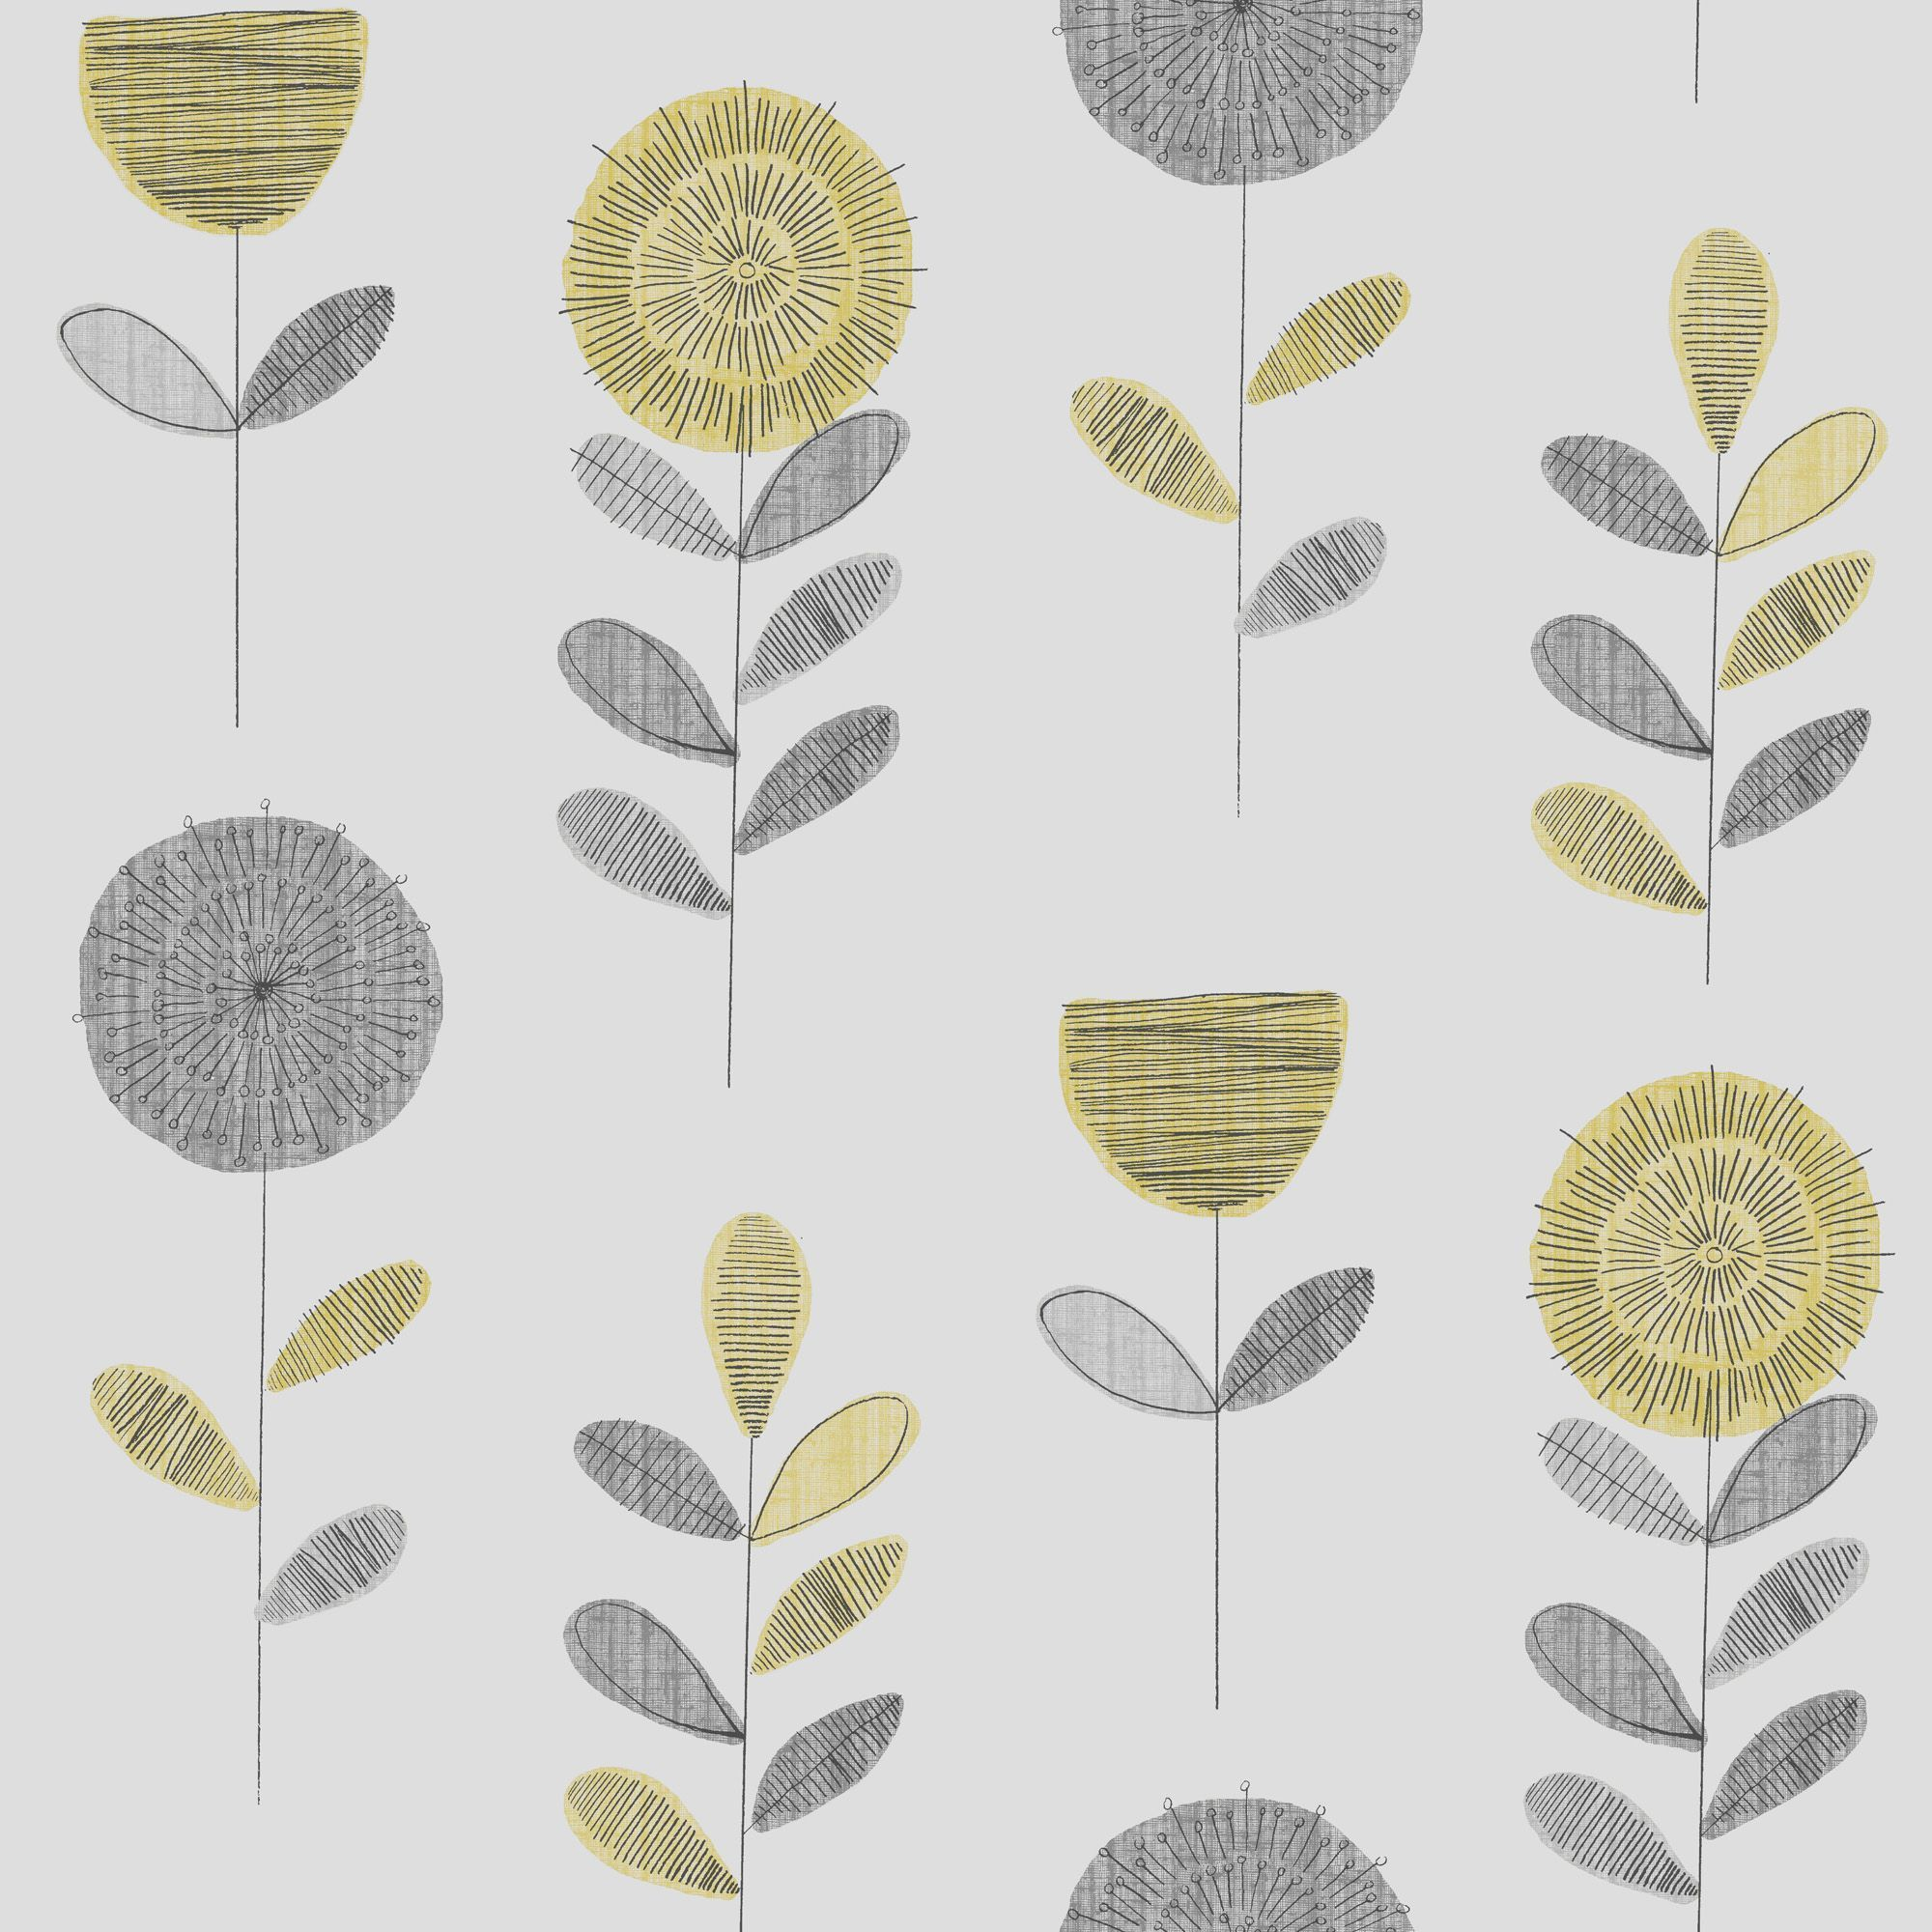 Super Fresco Paste The Paper Flower Sketch Grey & Yellow